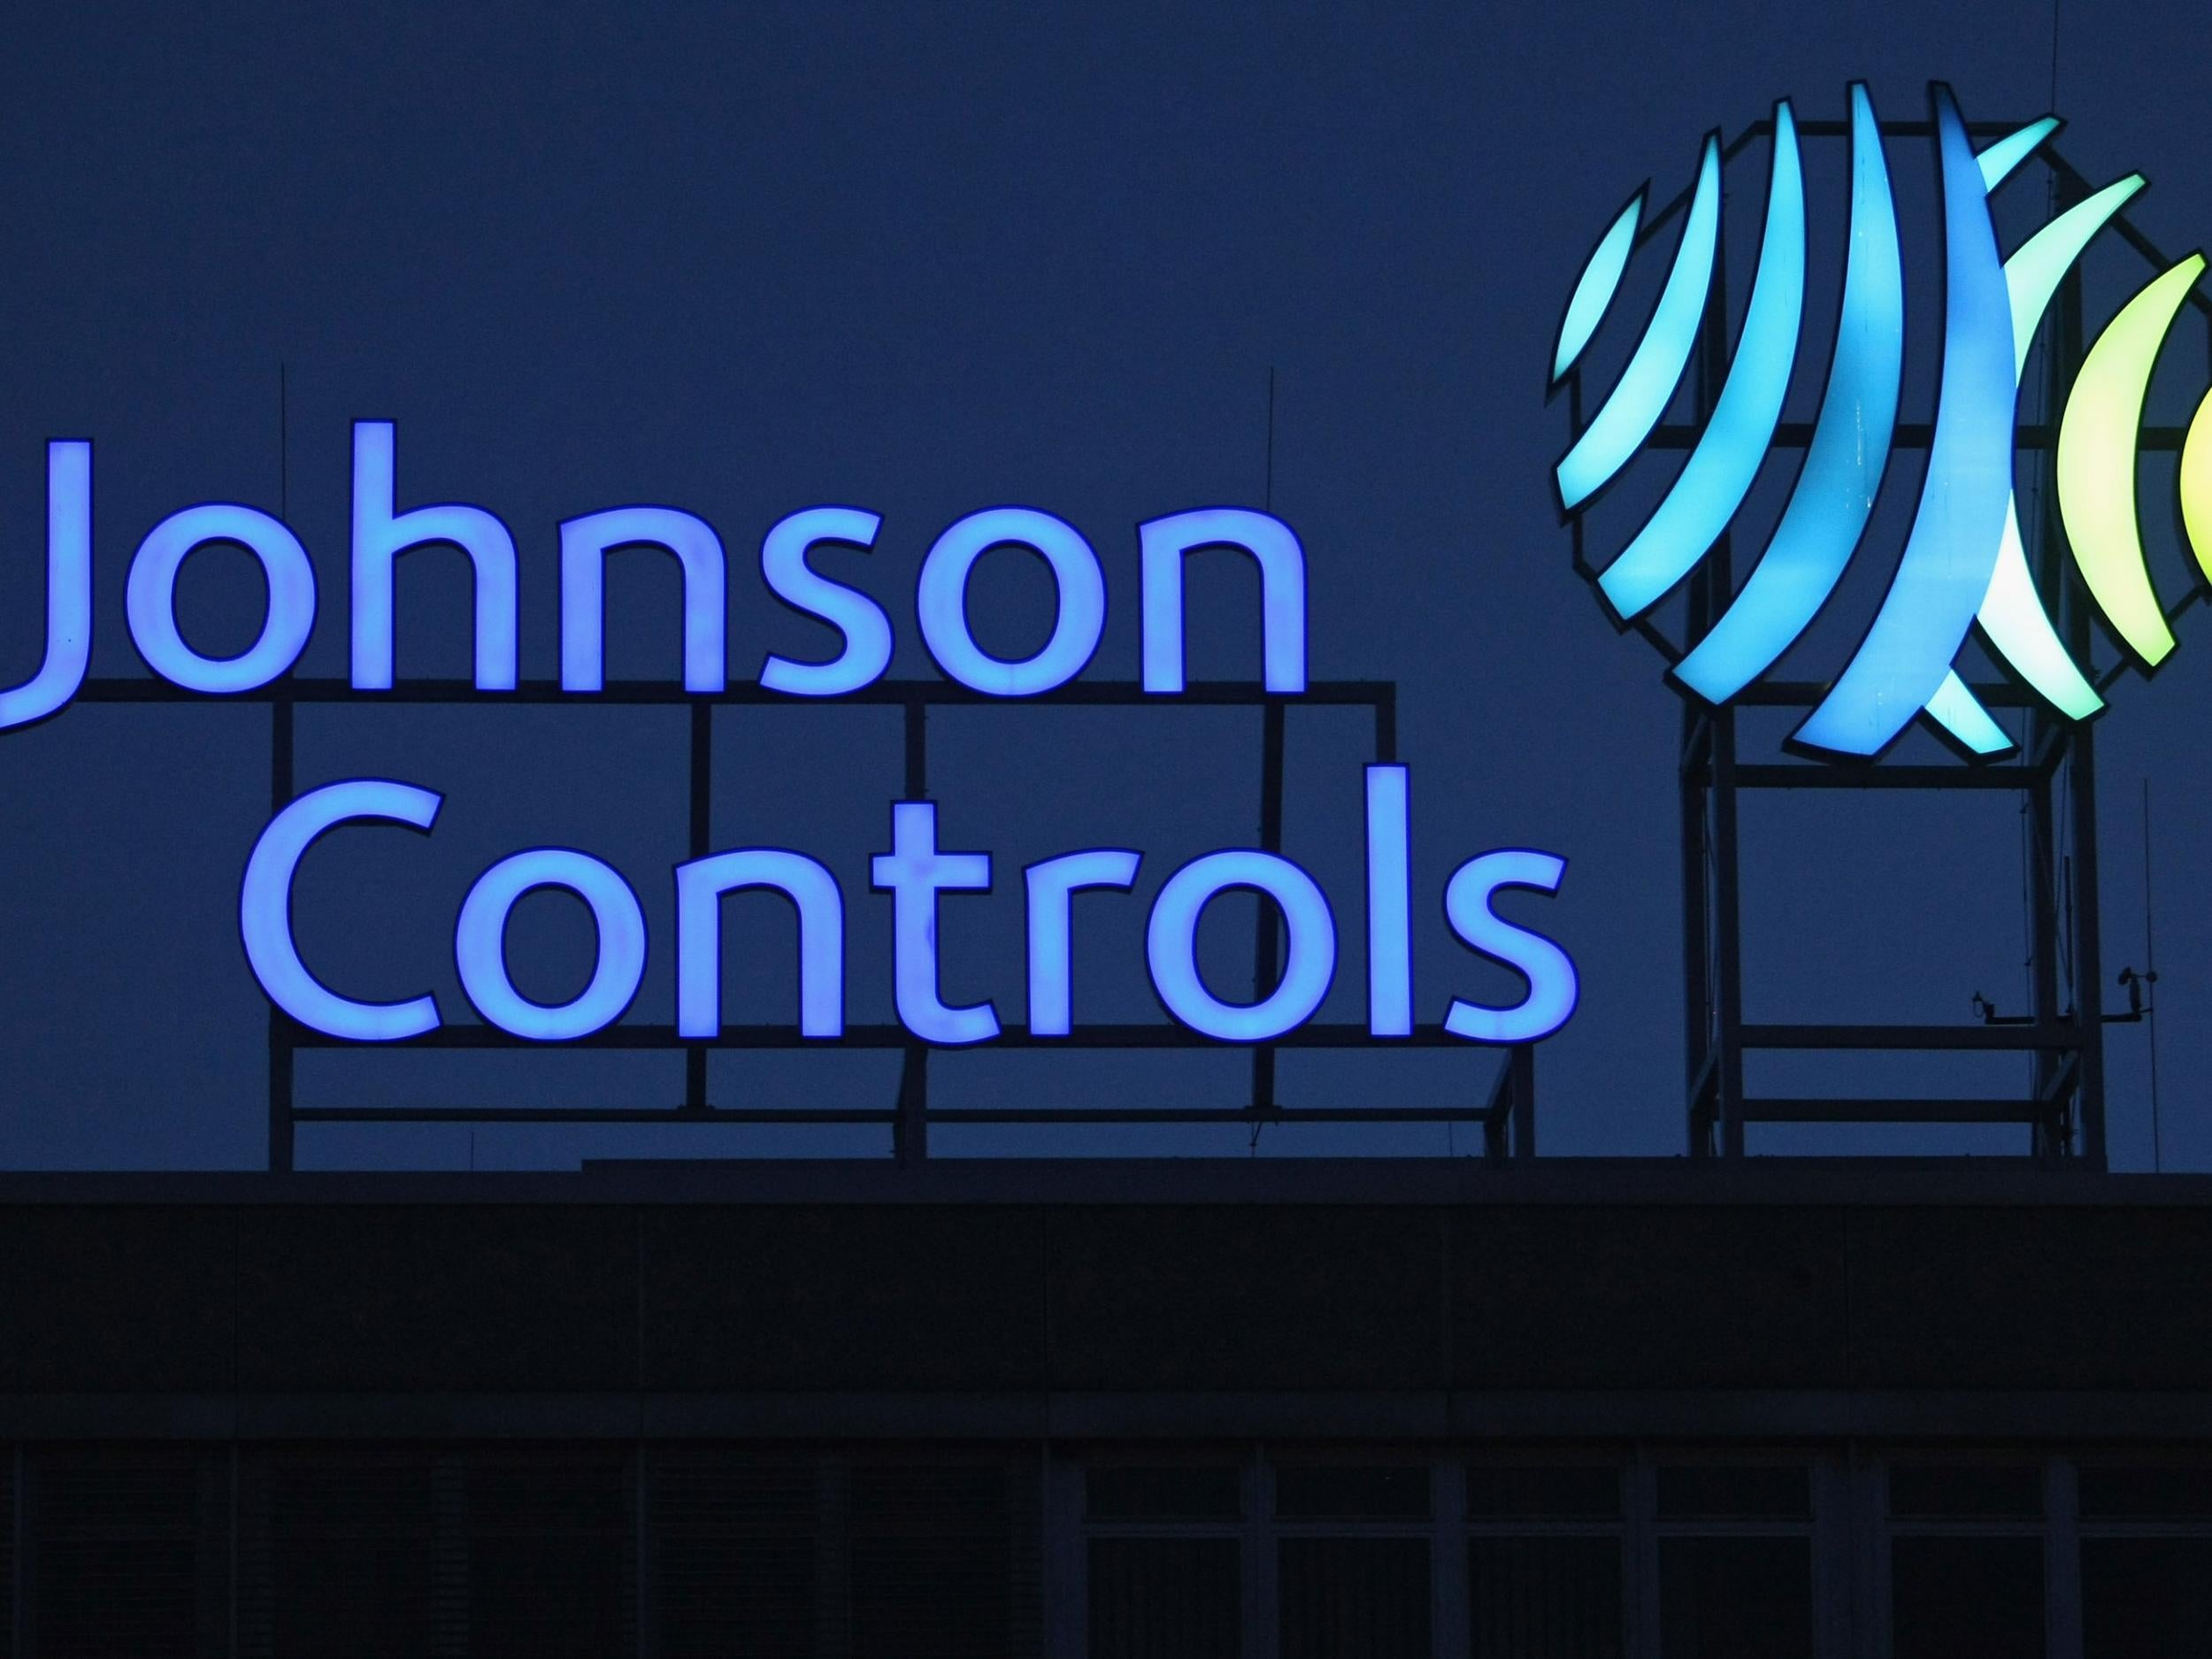 Johnson Controls said to be in talks to combine with Tyco